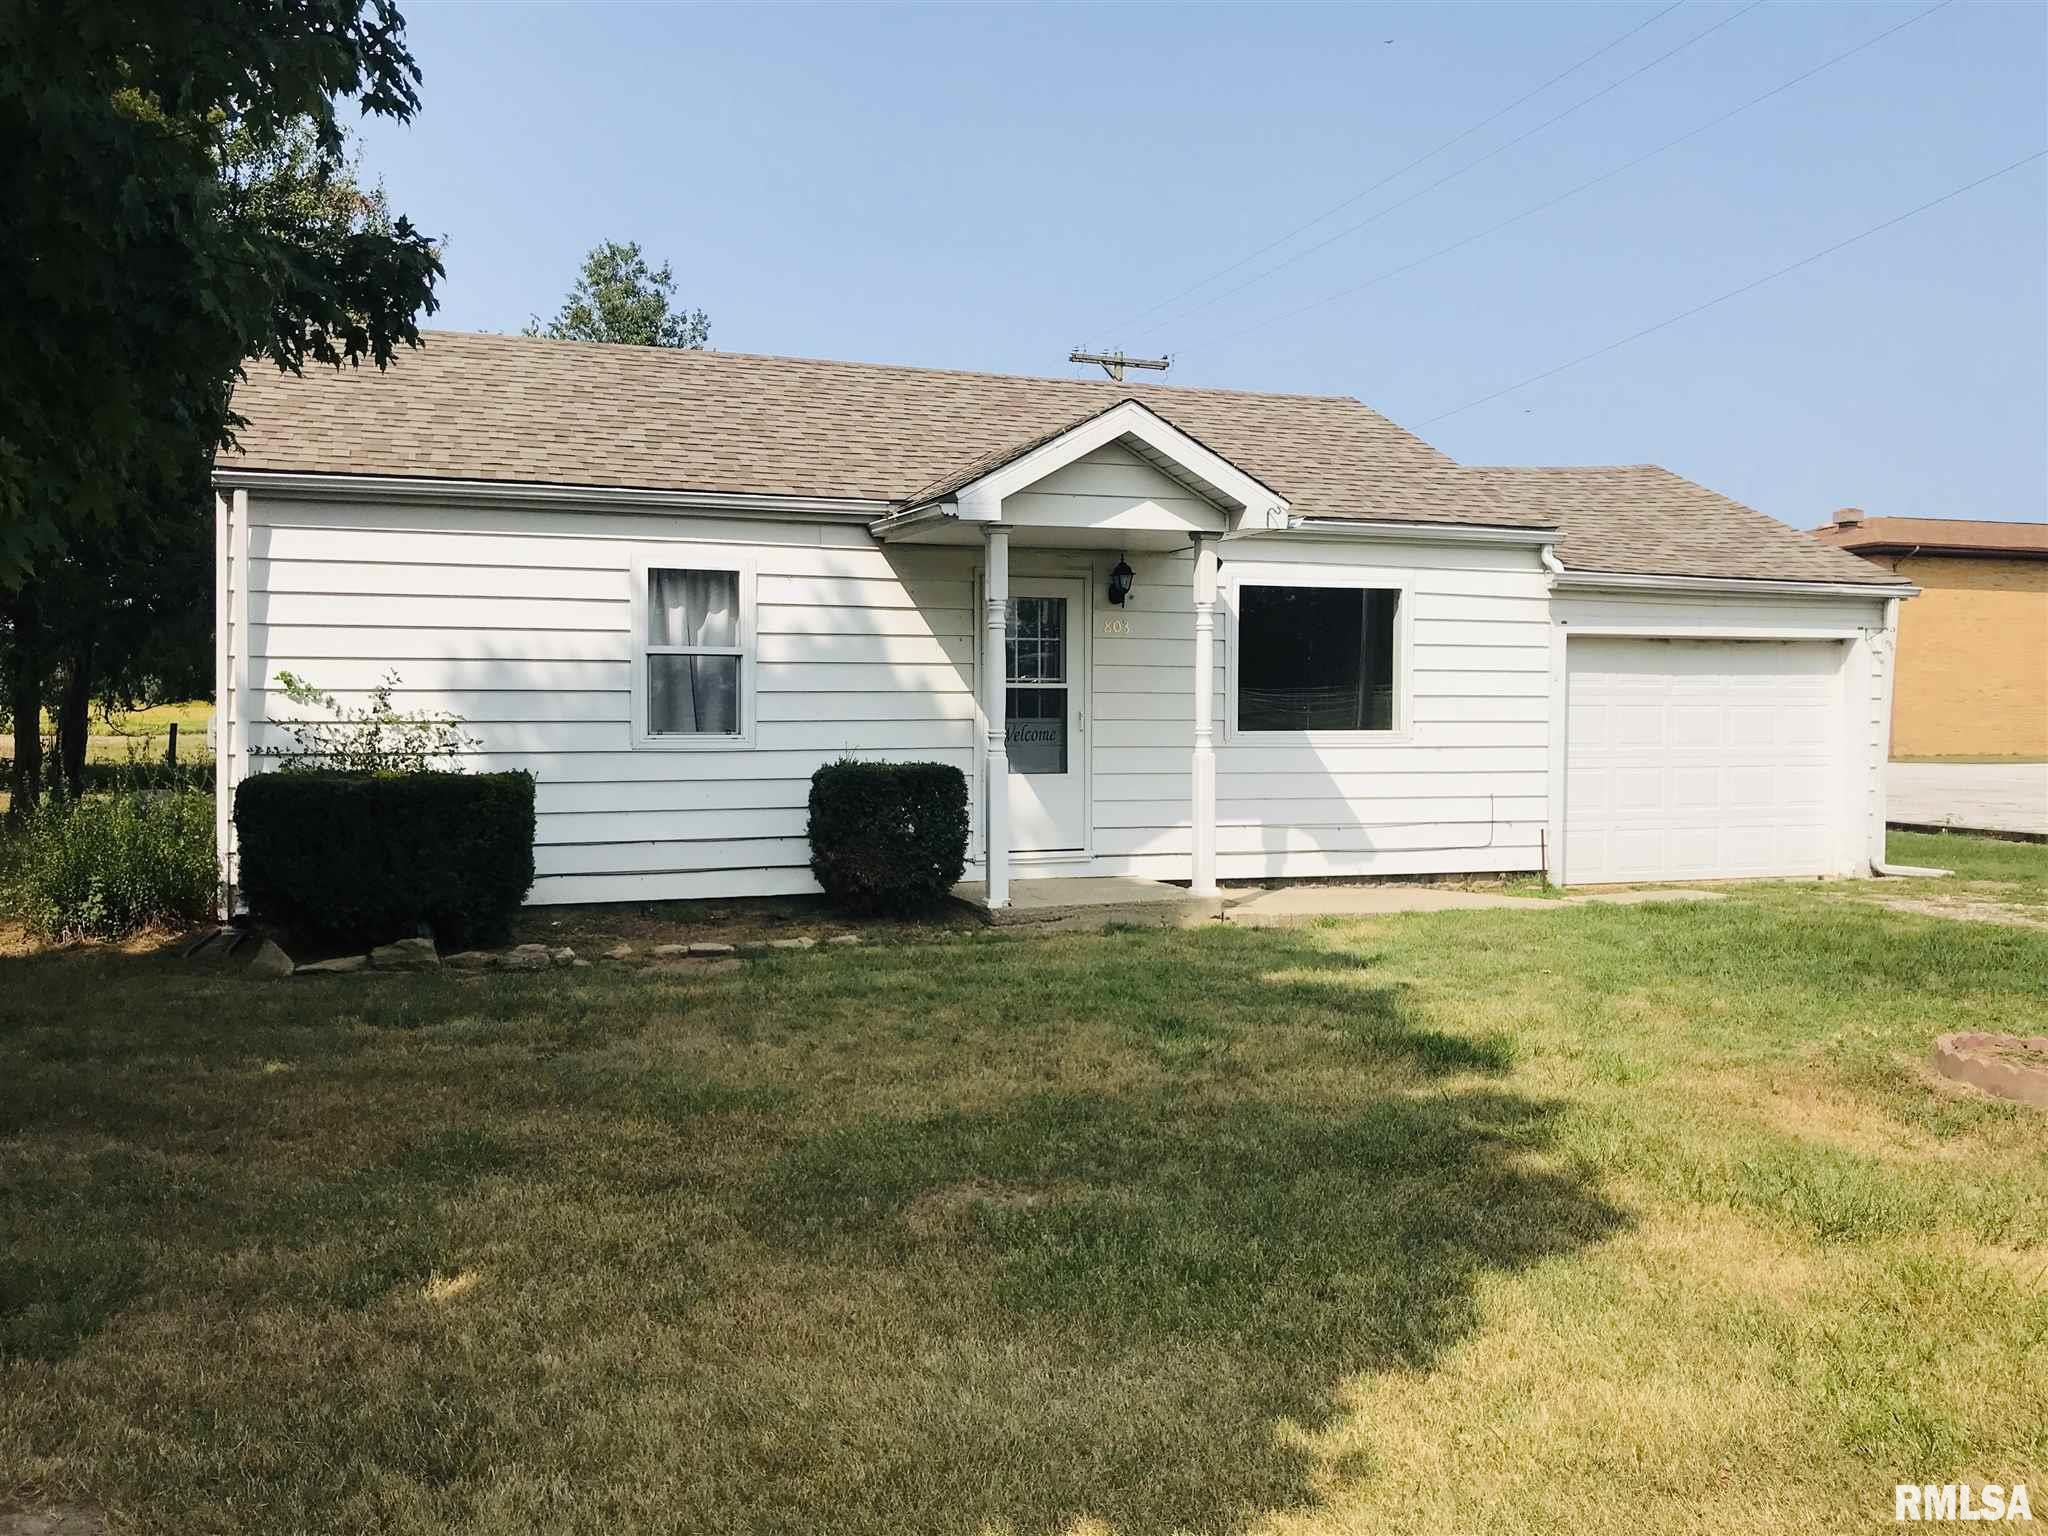 803 E FIRST Property Photo - Kinmundy, IL real estate listing